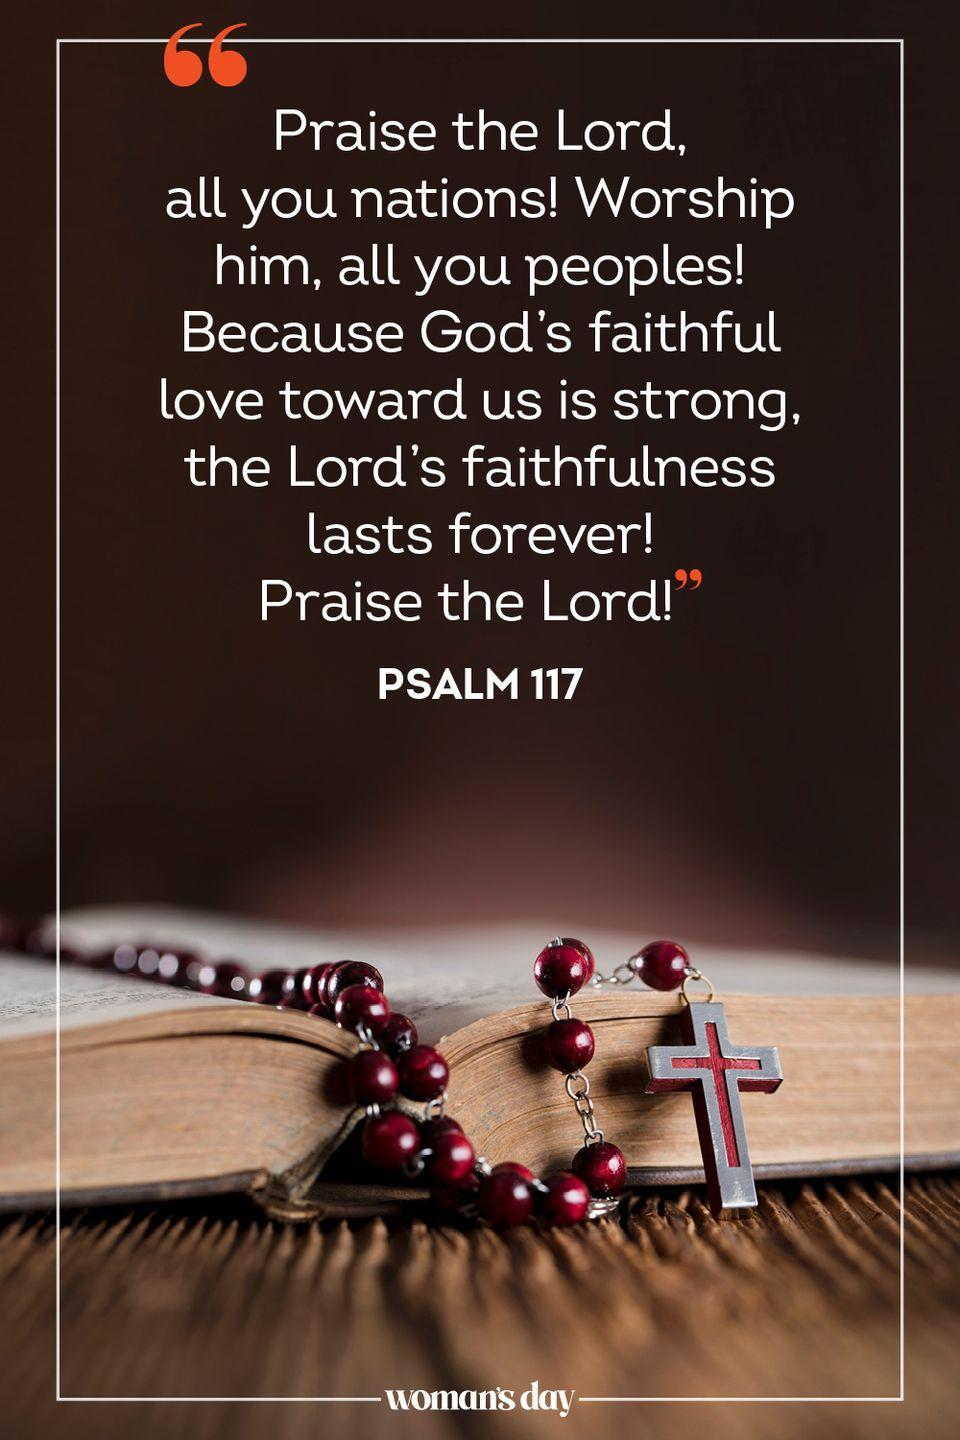 "<p>""Praise the Lord, all you nations! Worship him, all you peoples! <br>Because God's faithful love toward us is strong, the Lord's faithfulness lasts forever! <br>Praise the Lord!"" — Psalm 117</p>"